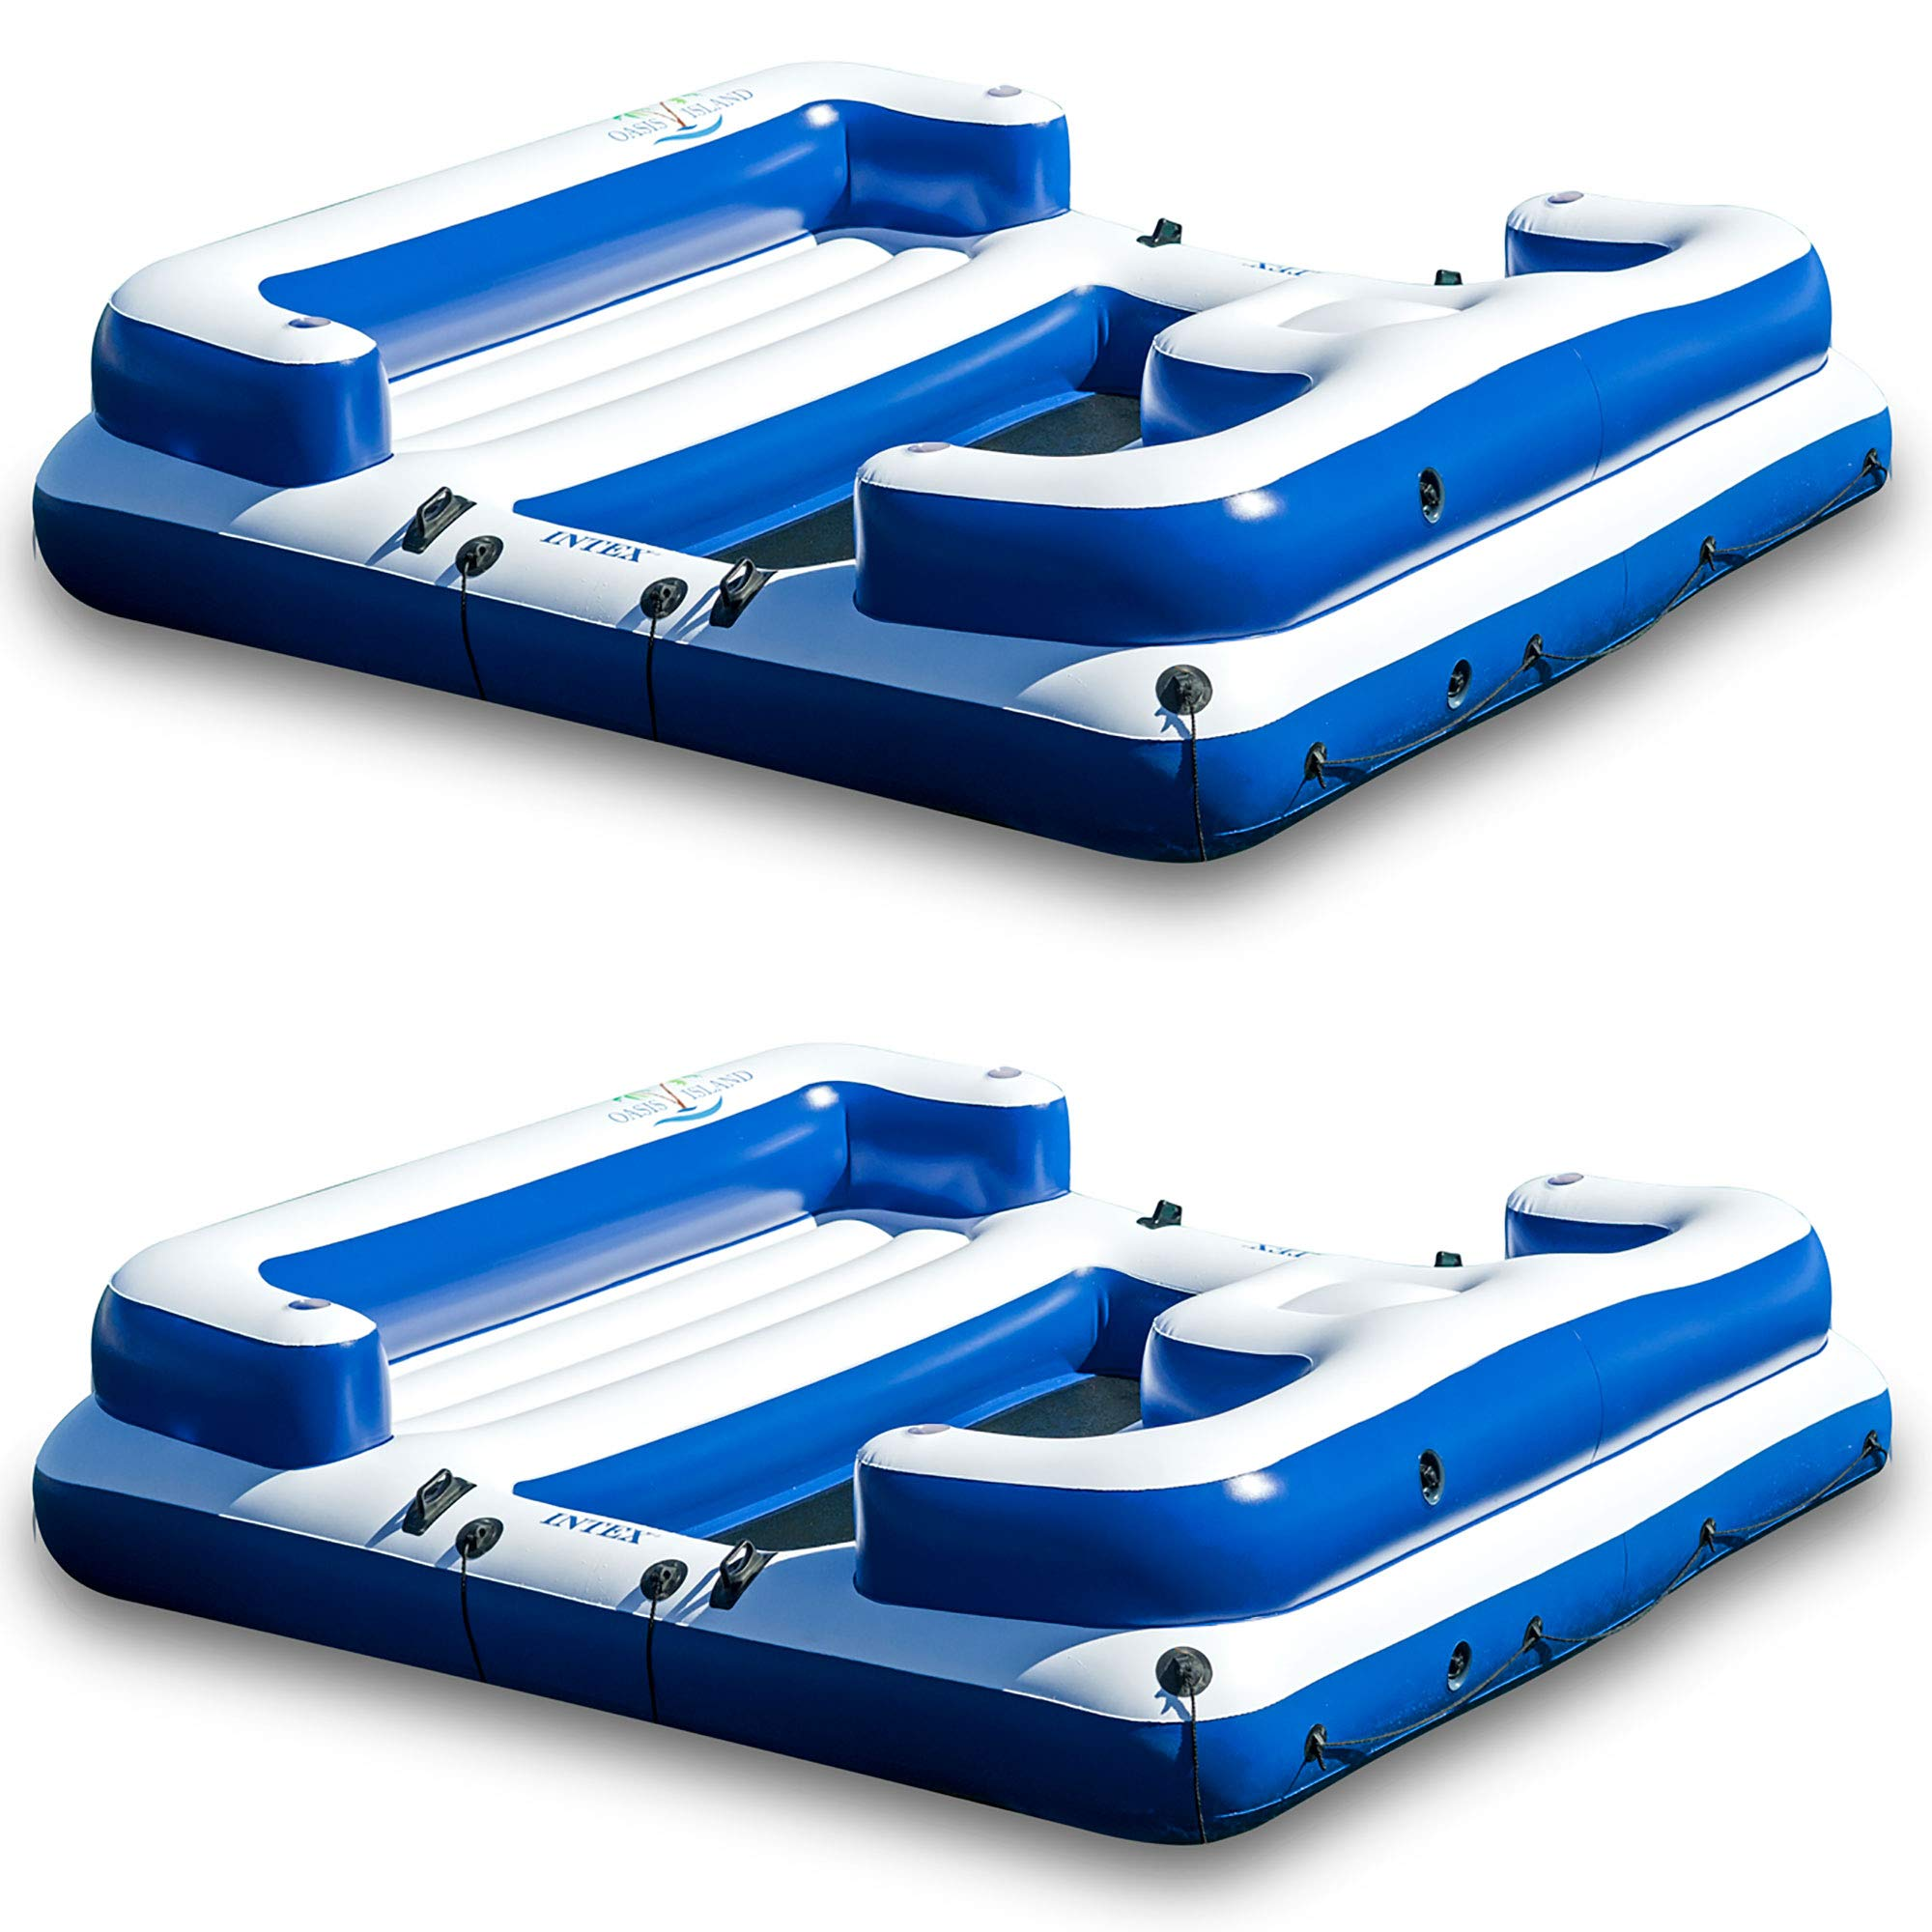 Intex Oasis Island Inflatable Giant 5 Person Lake Floating Lounge Raft (2 Pack) by Intex (Image #1)